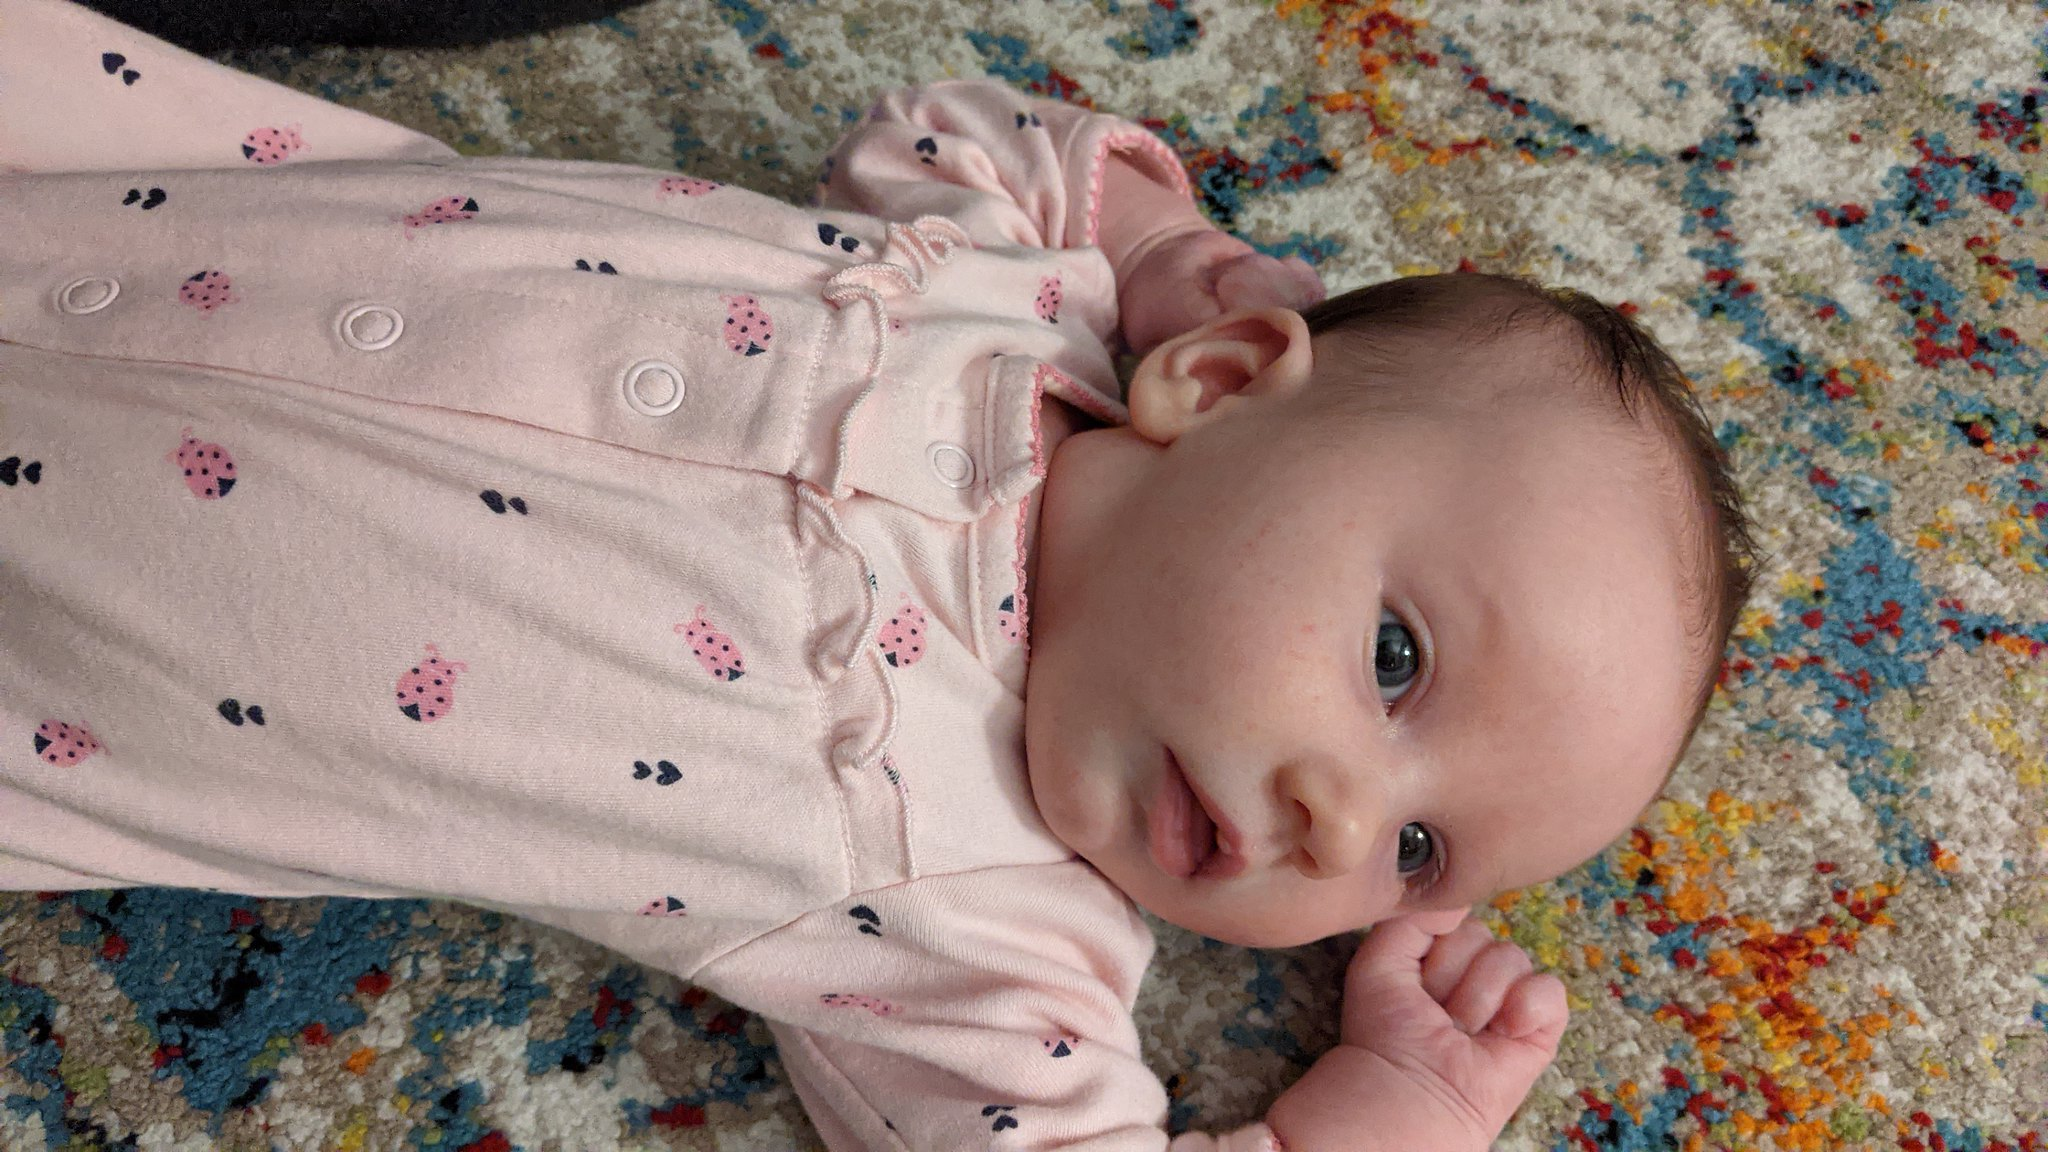 My six-week-old daughter Olive stretching her arms above her head, wearing pink footie pajamas